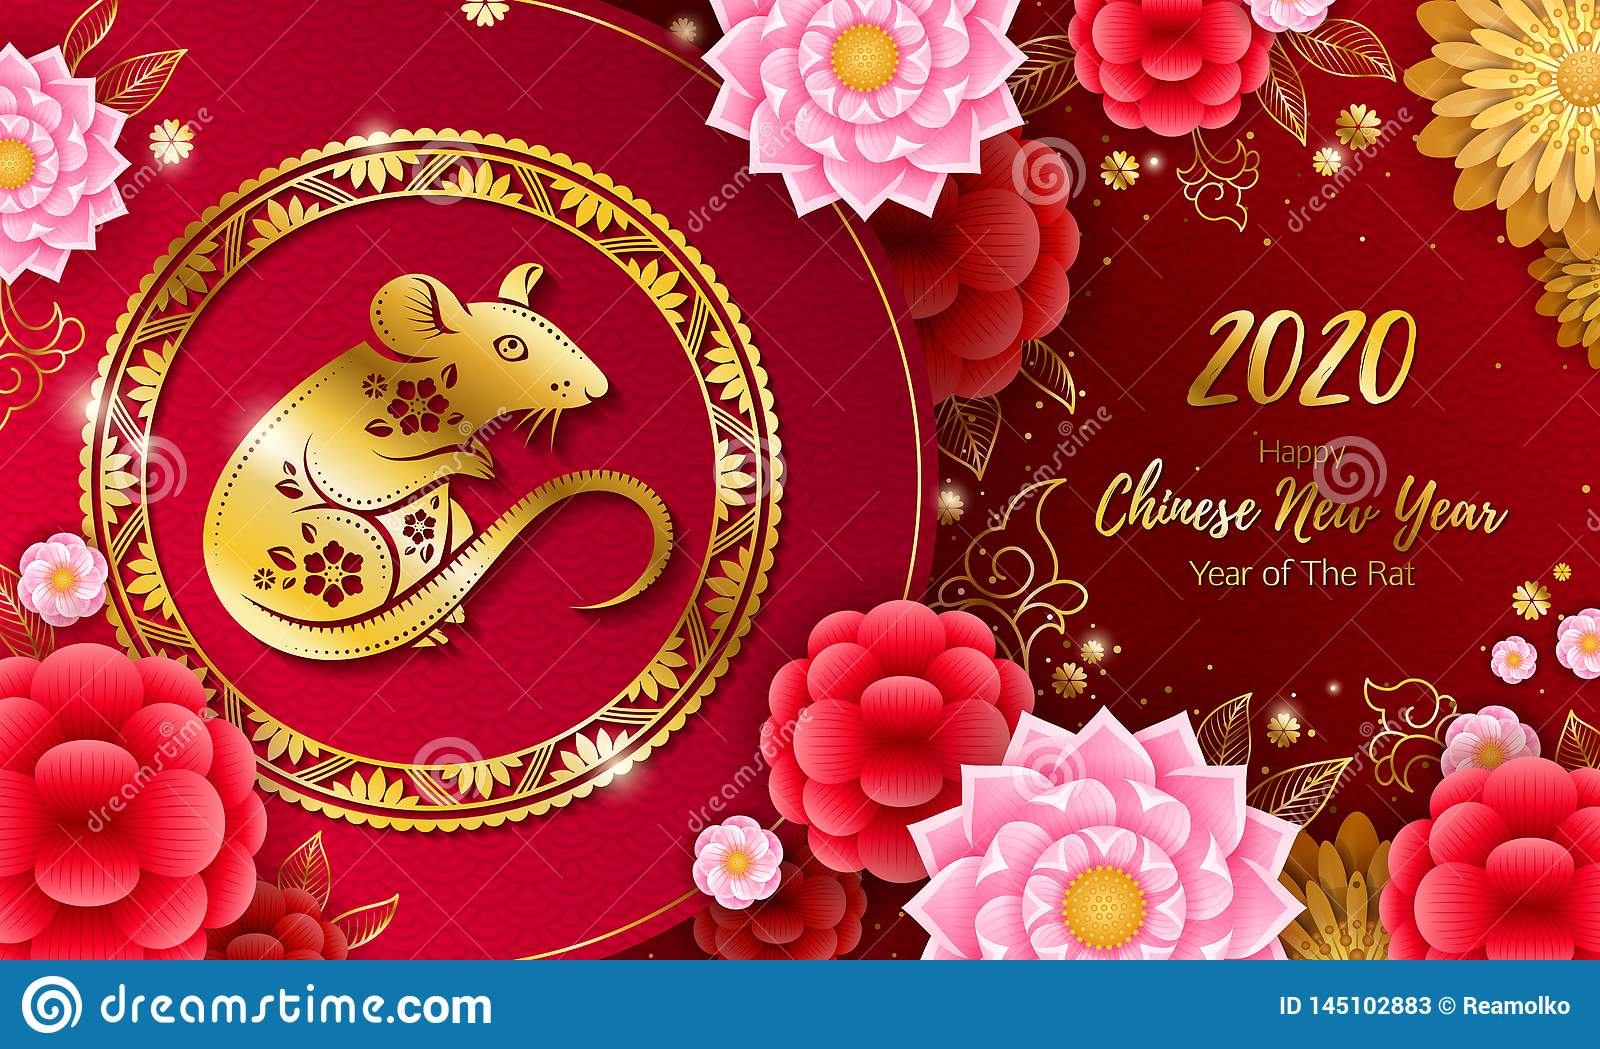 2020 Happy Chinese New Year Background With Rat  Stock